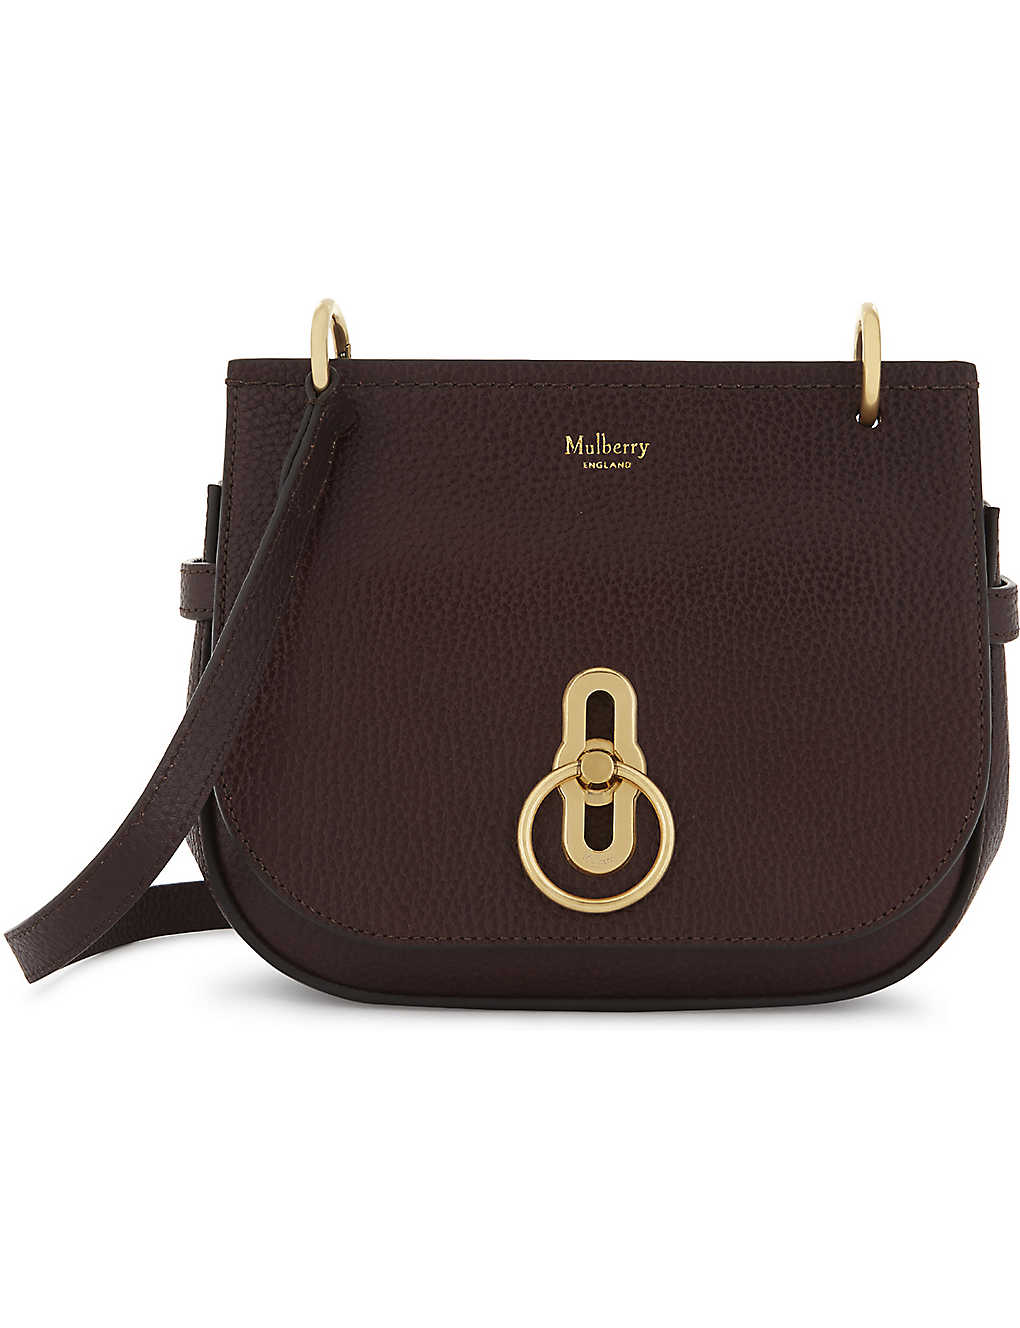 26d3e8cc63 MULBERRY - Amberley small grained leather cross-body bag ...